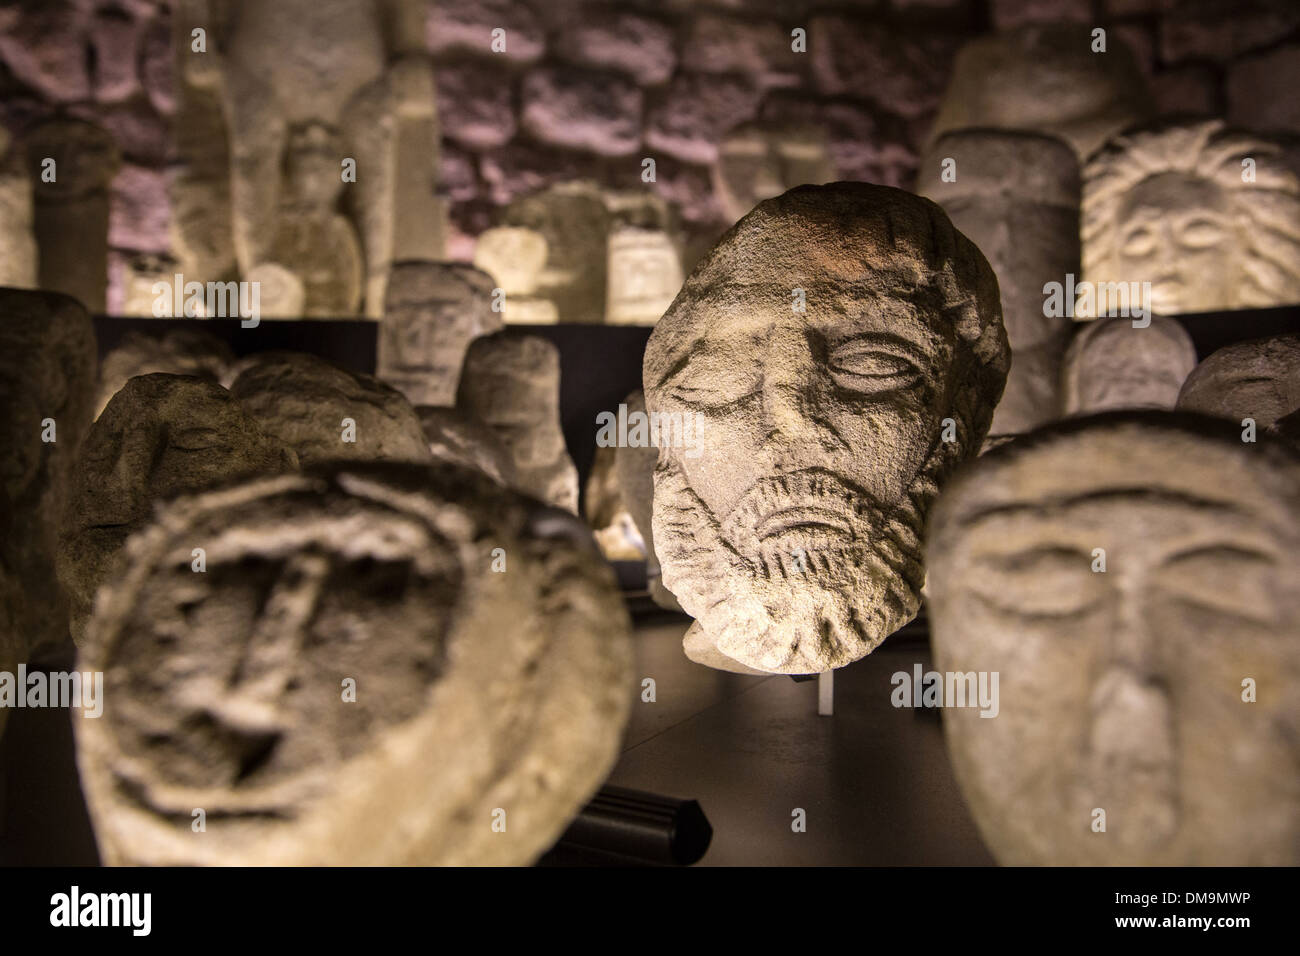 HEAD OF A BEARDED MAN, EX-VOTO IN THE HEALING TEMPLE IN THE FOREST OF HALATE, CITY MUSEUM OF ART AND ARCHAEOLOGY IN THE FORMER BISHOP'S PALACE, SENLIS, OISE (60), FRANCE - Stock Image